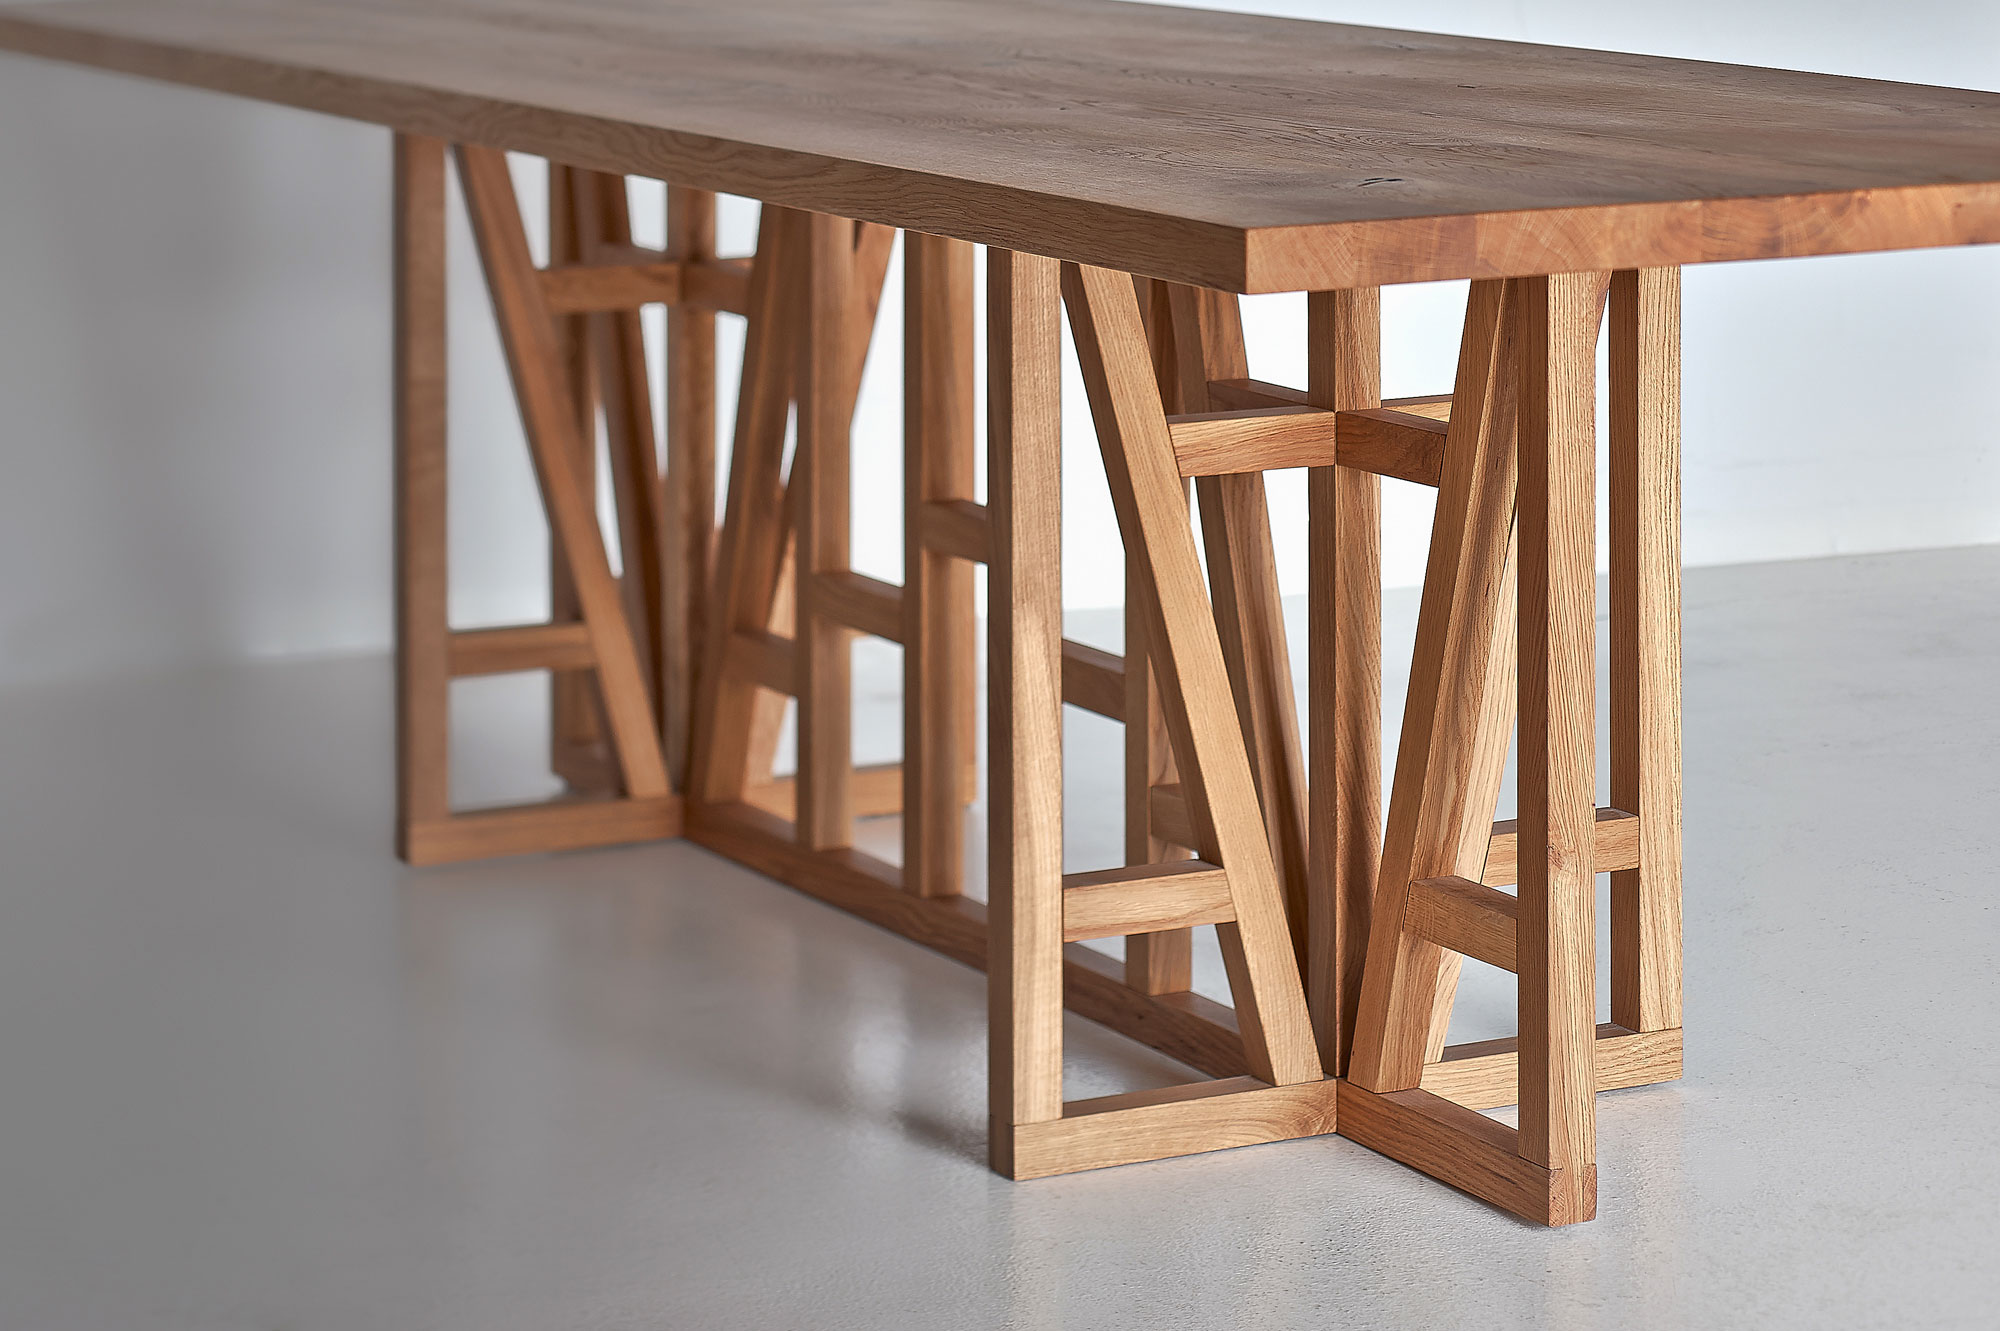 Designer Solid Wood Table FACHWERK 0043aW custom made in solid wood by vitamin design